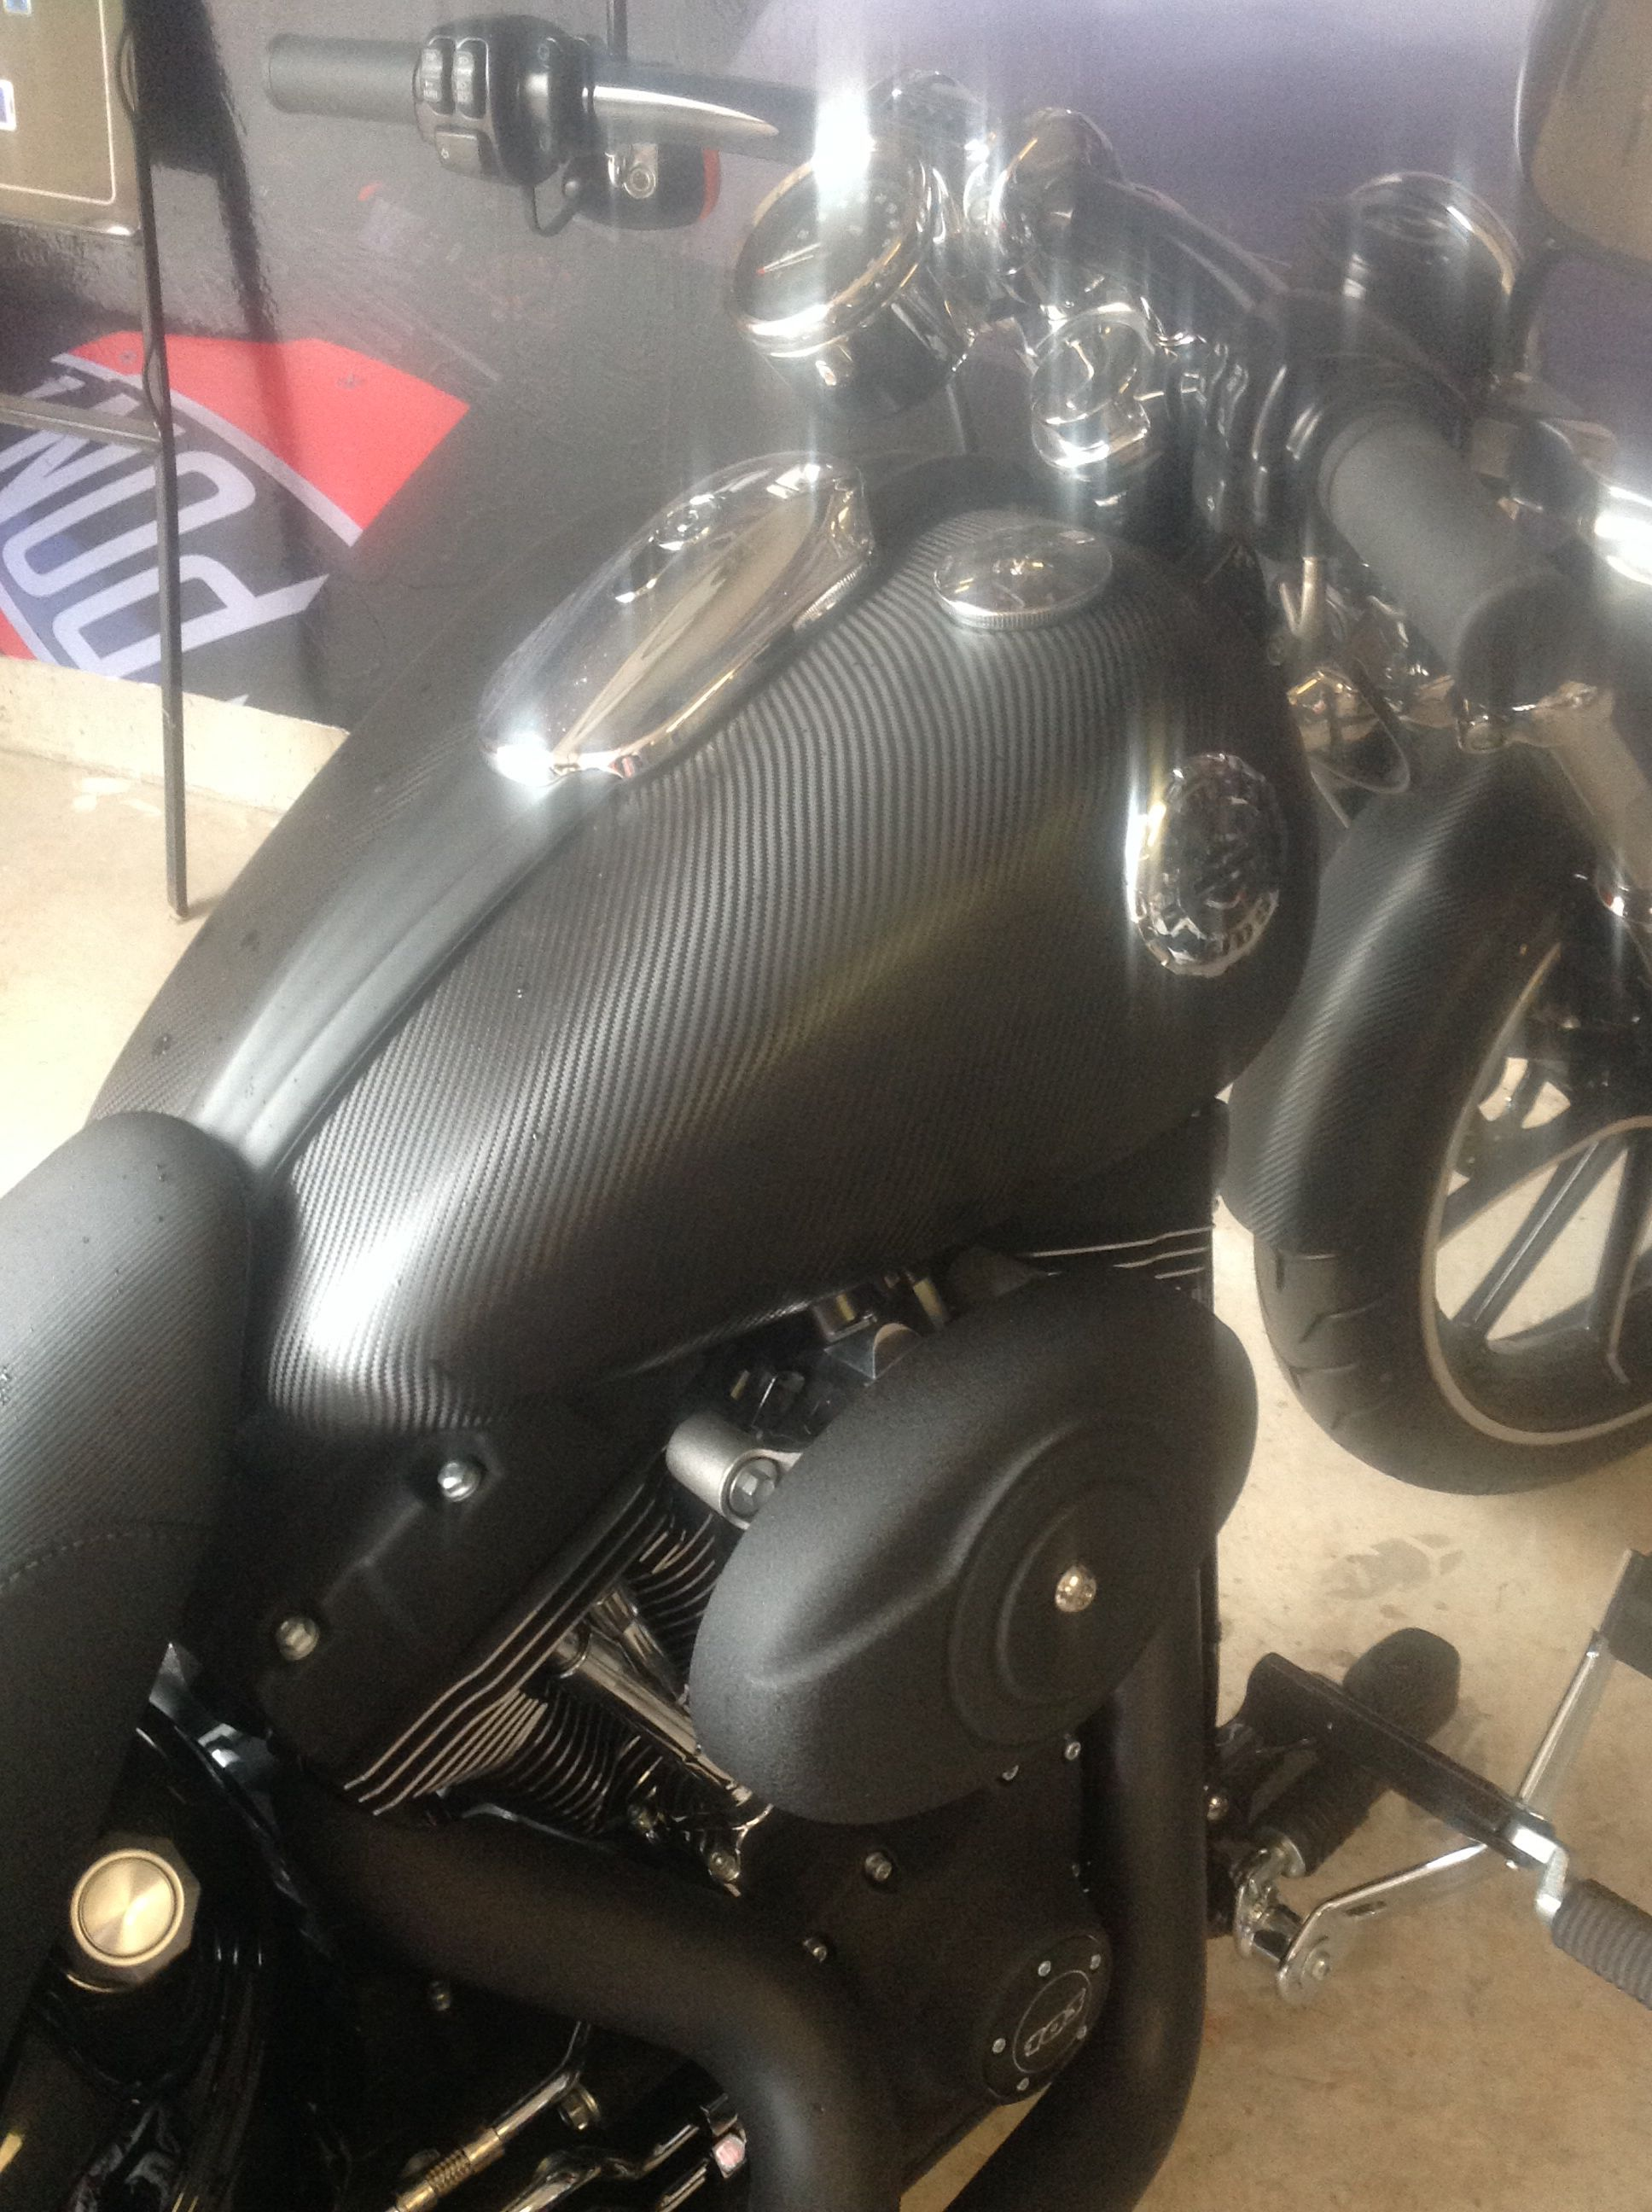 FELLERS Harley Breakout wrapped with 3M 1080 Carbon Fiber vinyl